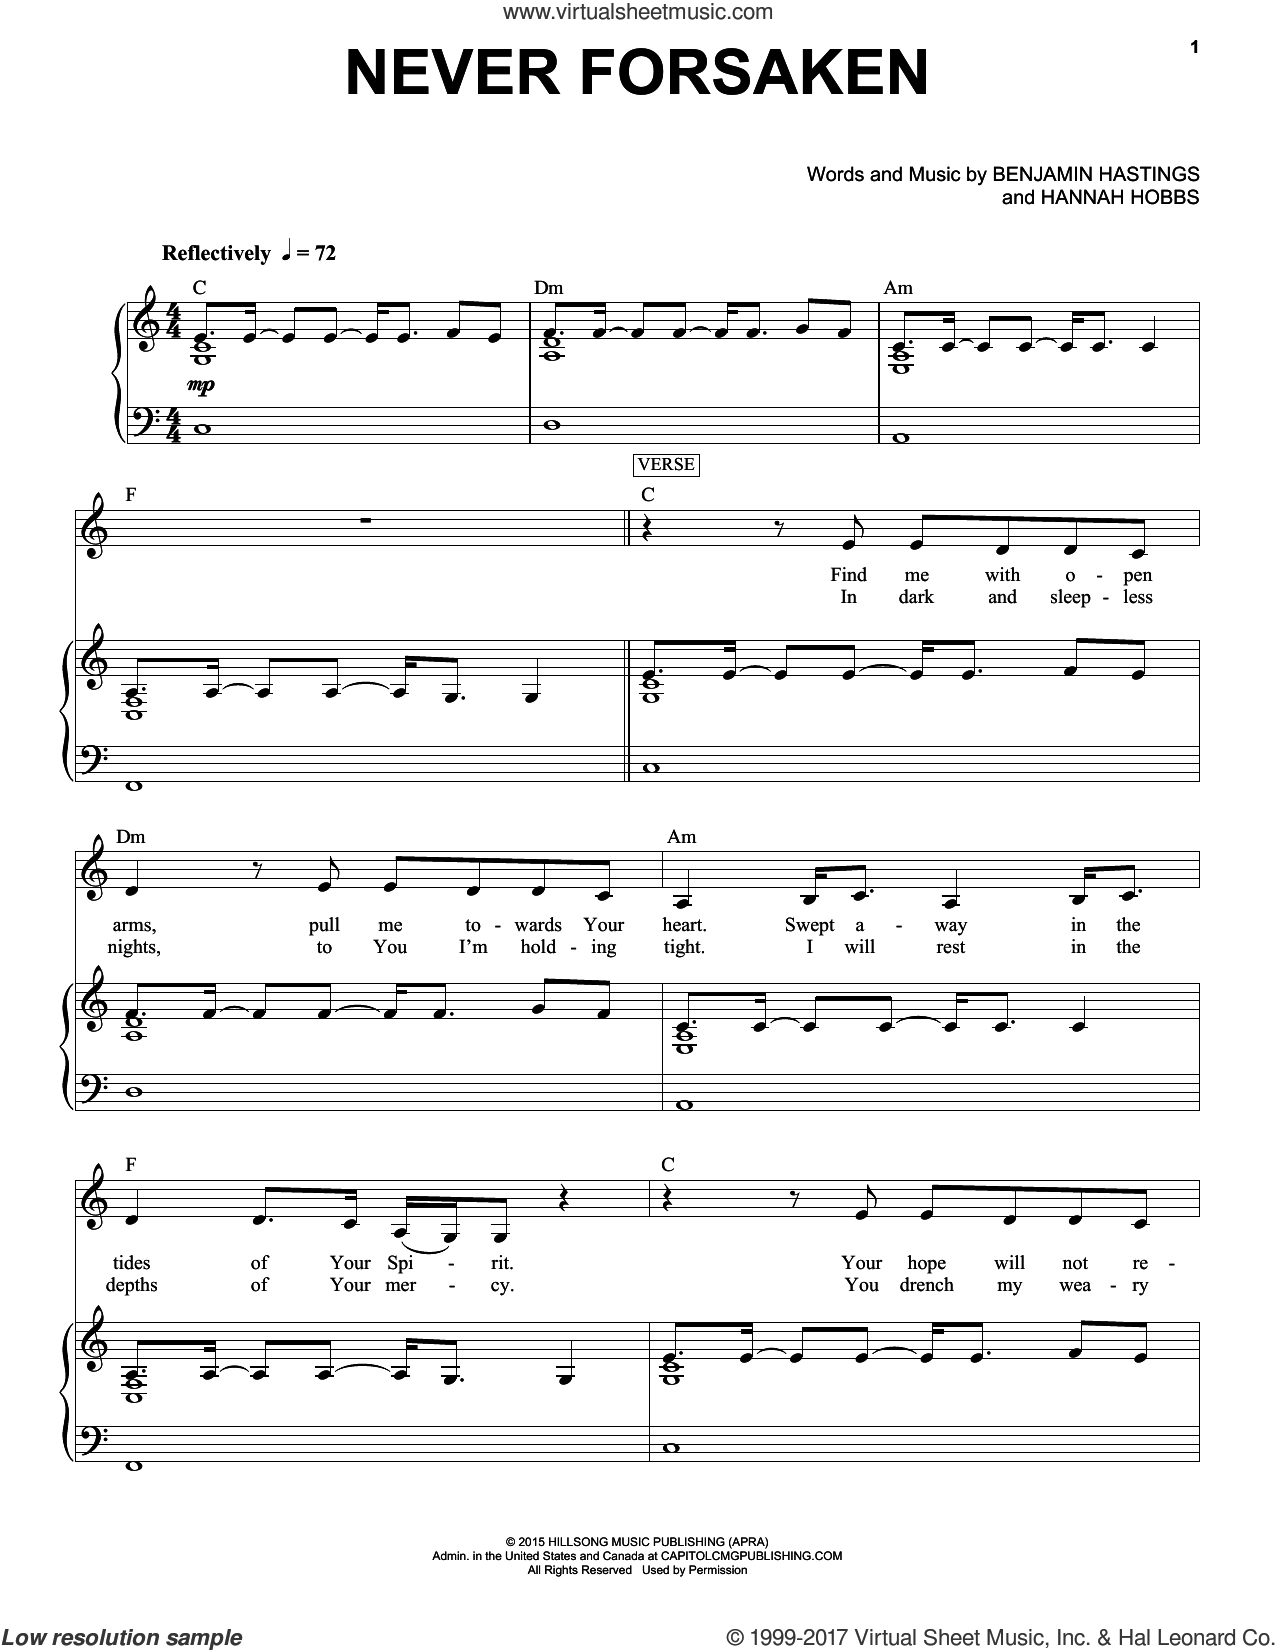 Never Forsaken sheet music for voice and piano by Hillsong Worship, Benjamin Hastings and Hannah Hobbs, intermediate skill level